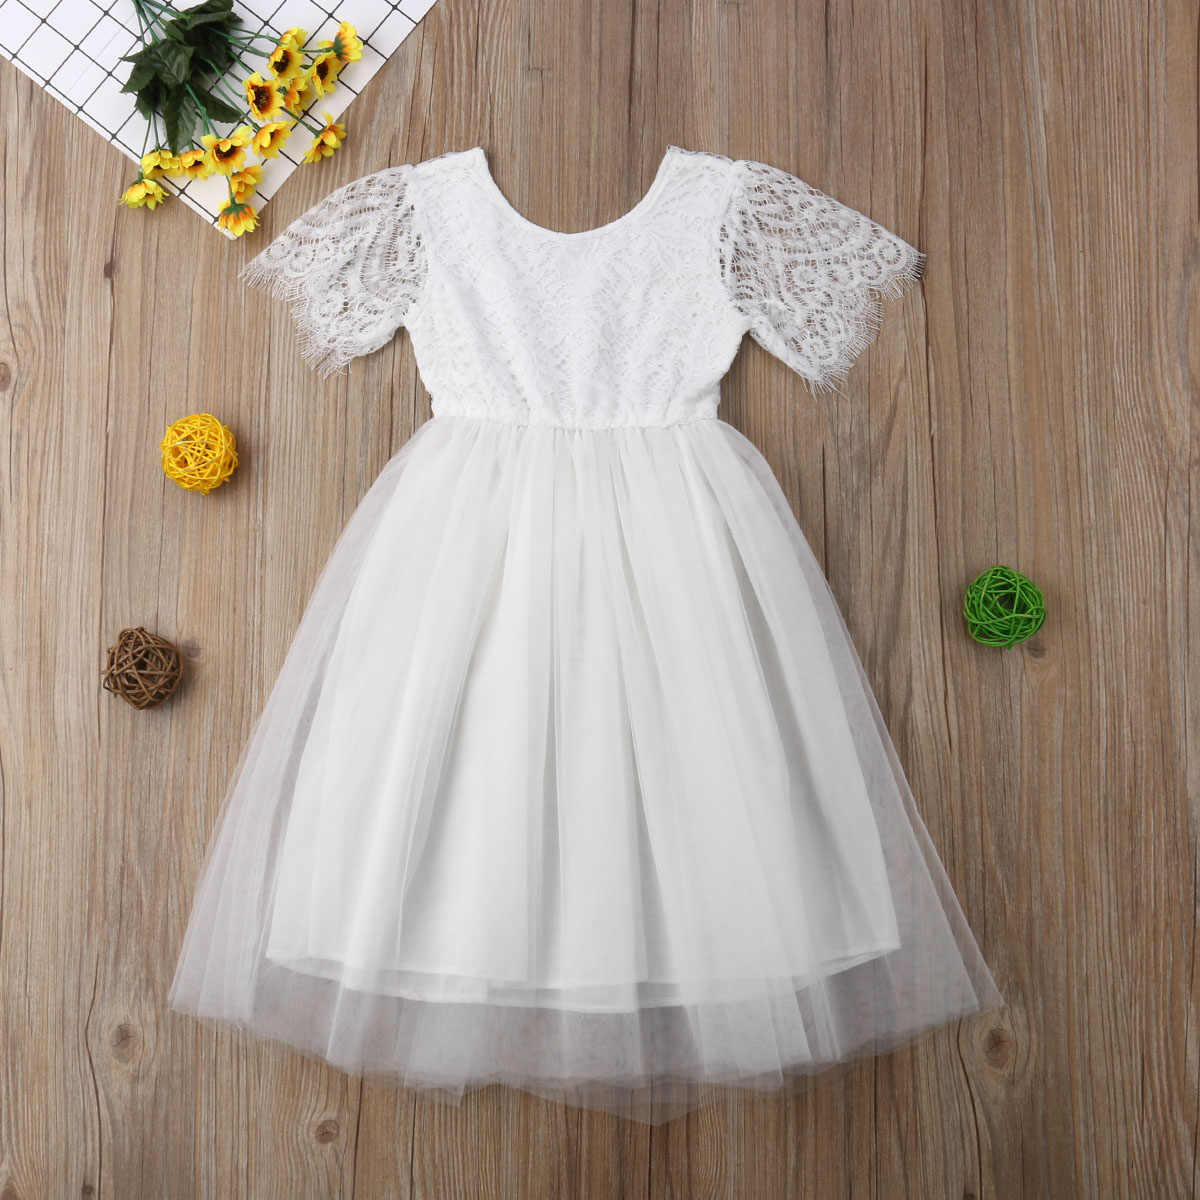 0e16cb183fb60 2019 Brand New 2-7Y Girls Princess Gown Dress Kids Elegant Party Clothes  Lace Solid Ankle Length Pageant Bridesmaid Tutu Dresses